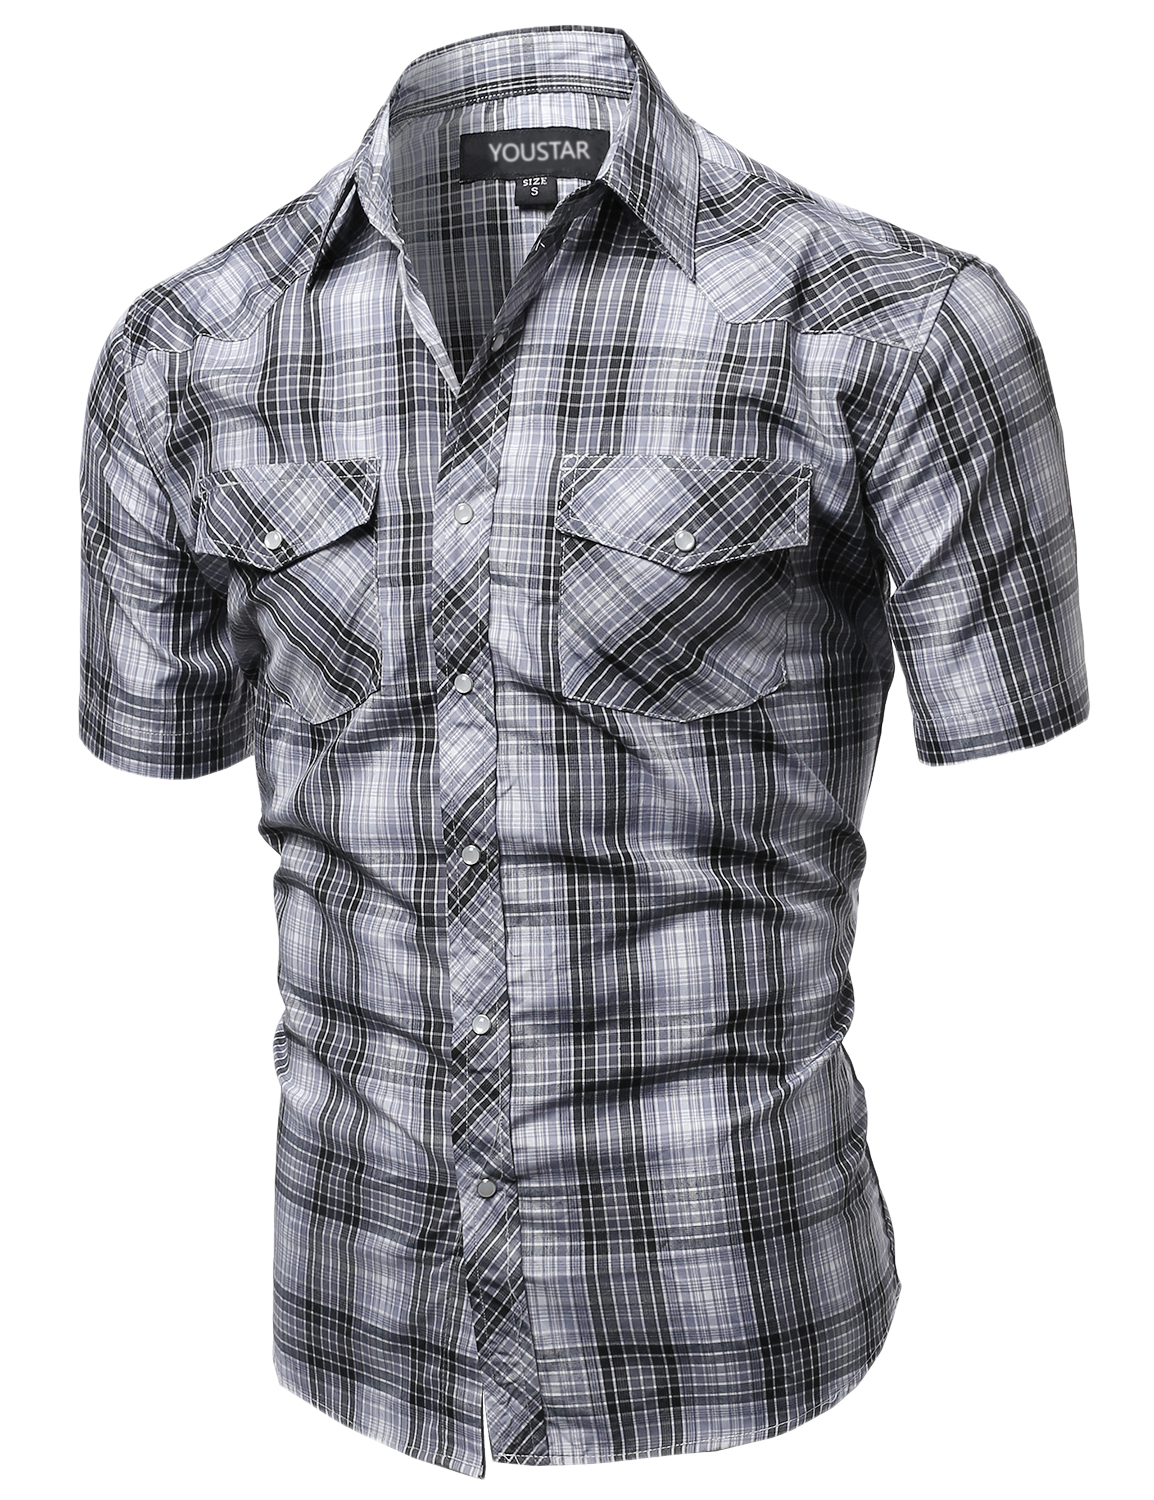 Fashionoutfit Men 39 S Western Casual Button Down Plaid Check